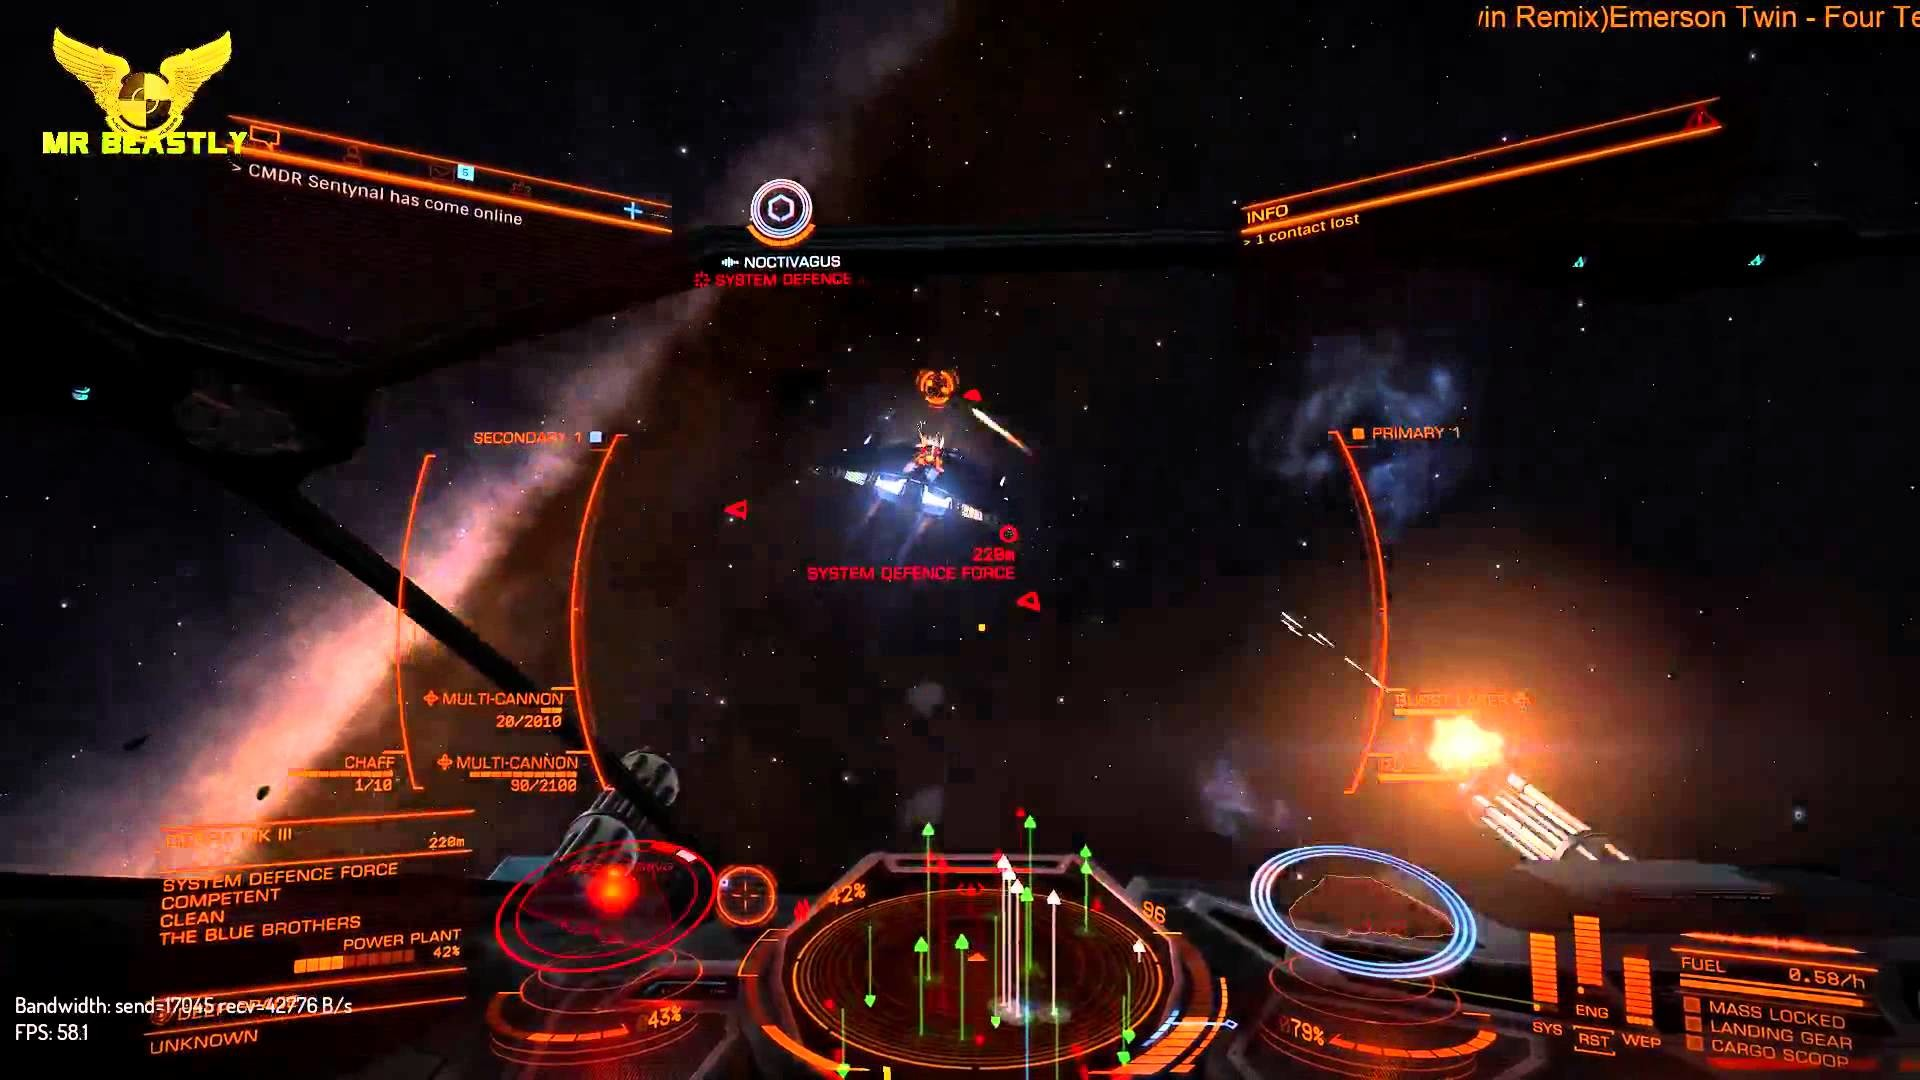 Elite: Dangerous v1.2 in 4K (streaming in 1080p) Testing WIngs with CMDR  Noctivagus!